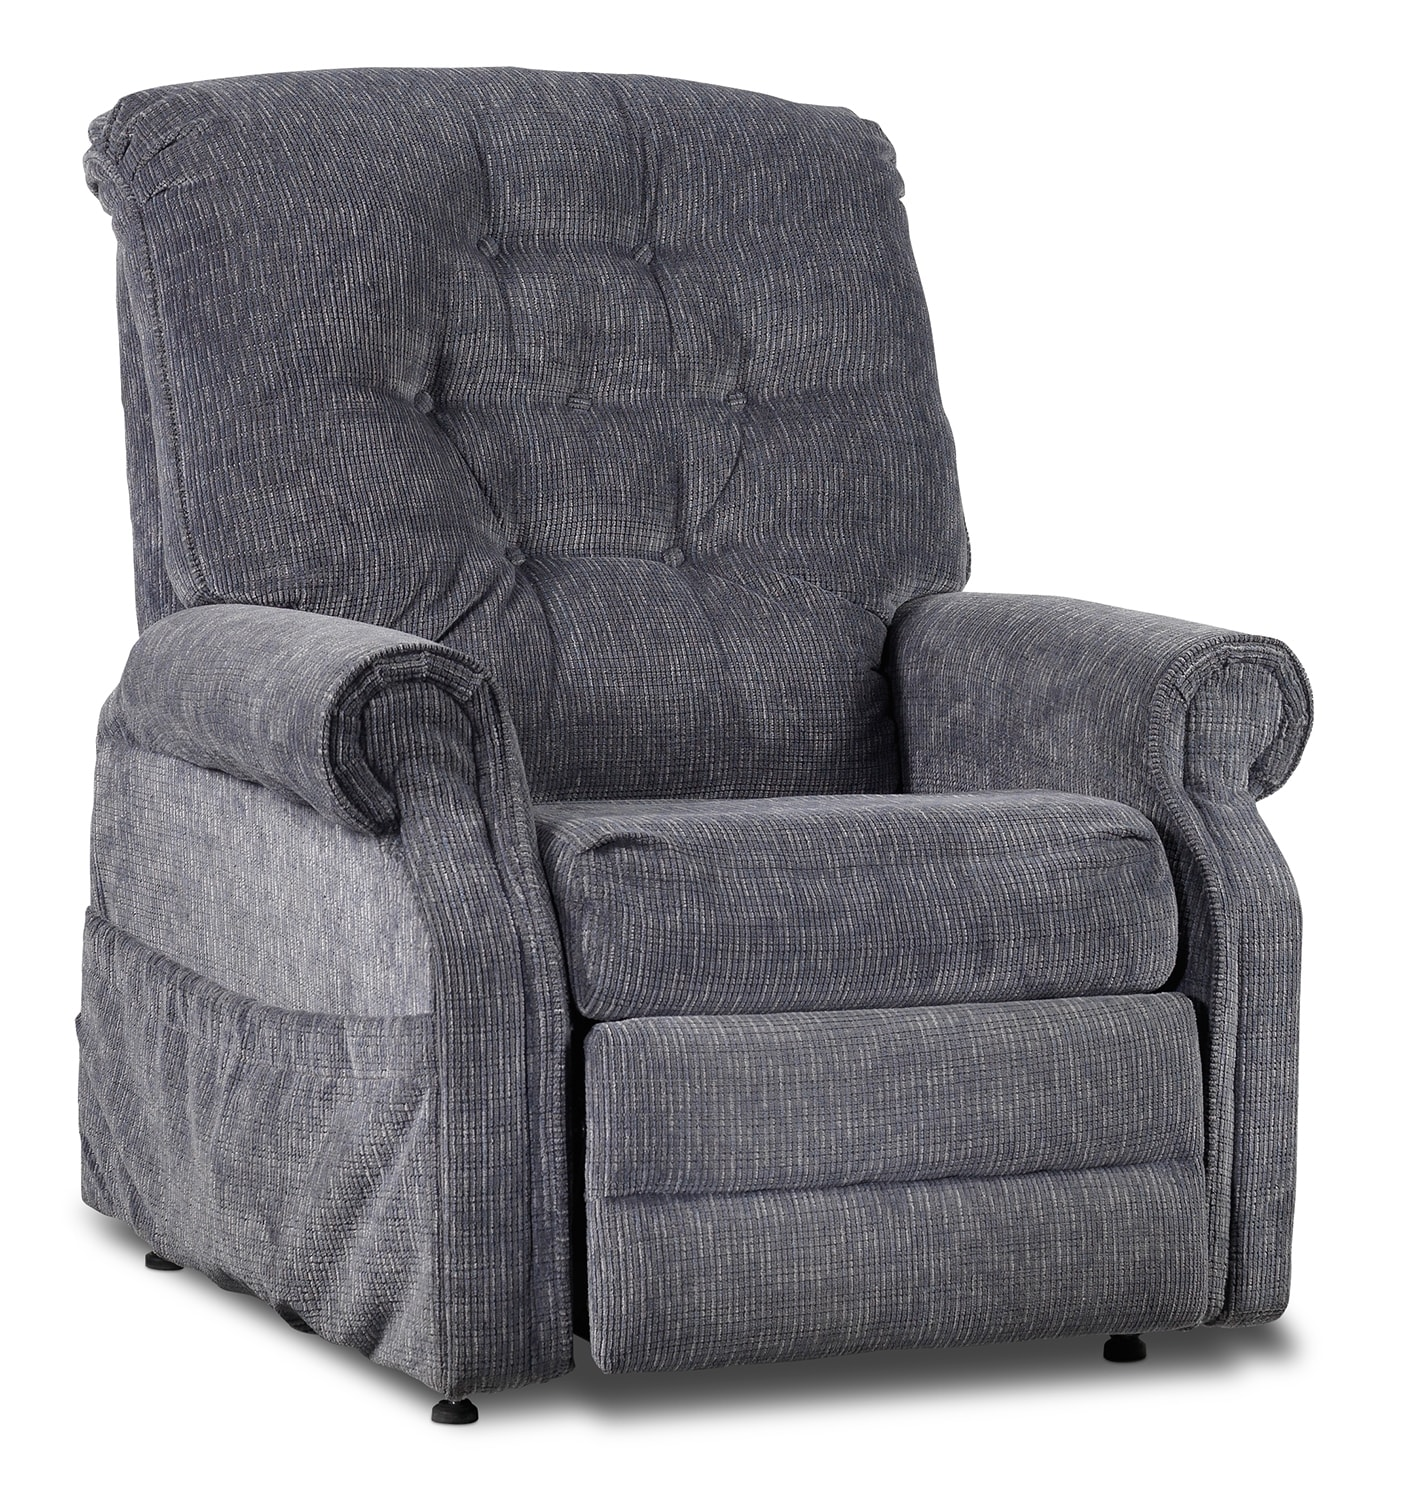 Boost Power Lift Recliner - Slate Grey